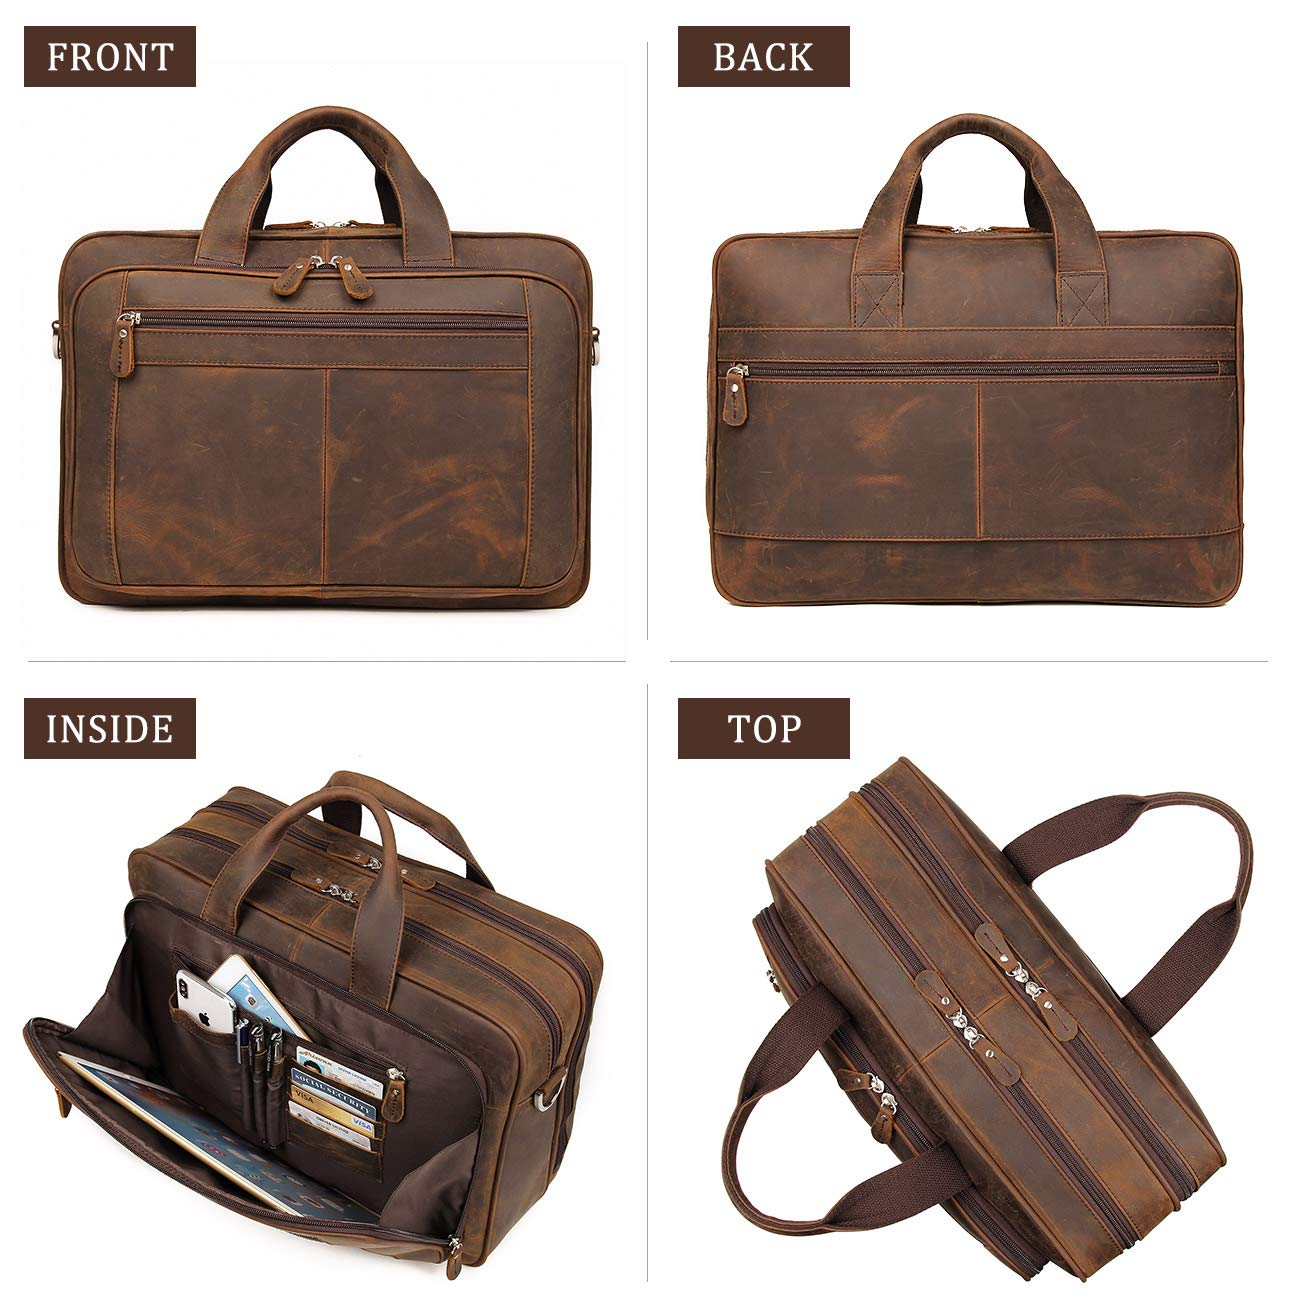 Augus Business Travel Briefcase Genuine Leather Duffel Bags for Men Laptop Bag fits 15.6 inches Laptop (Dark brown) by Augus (Image #3)